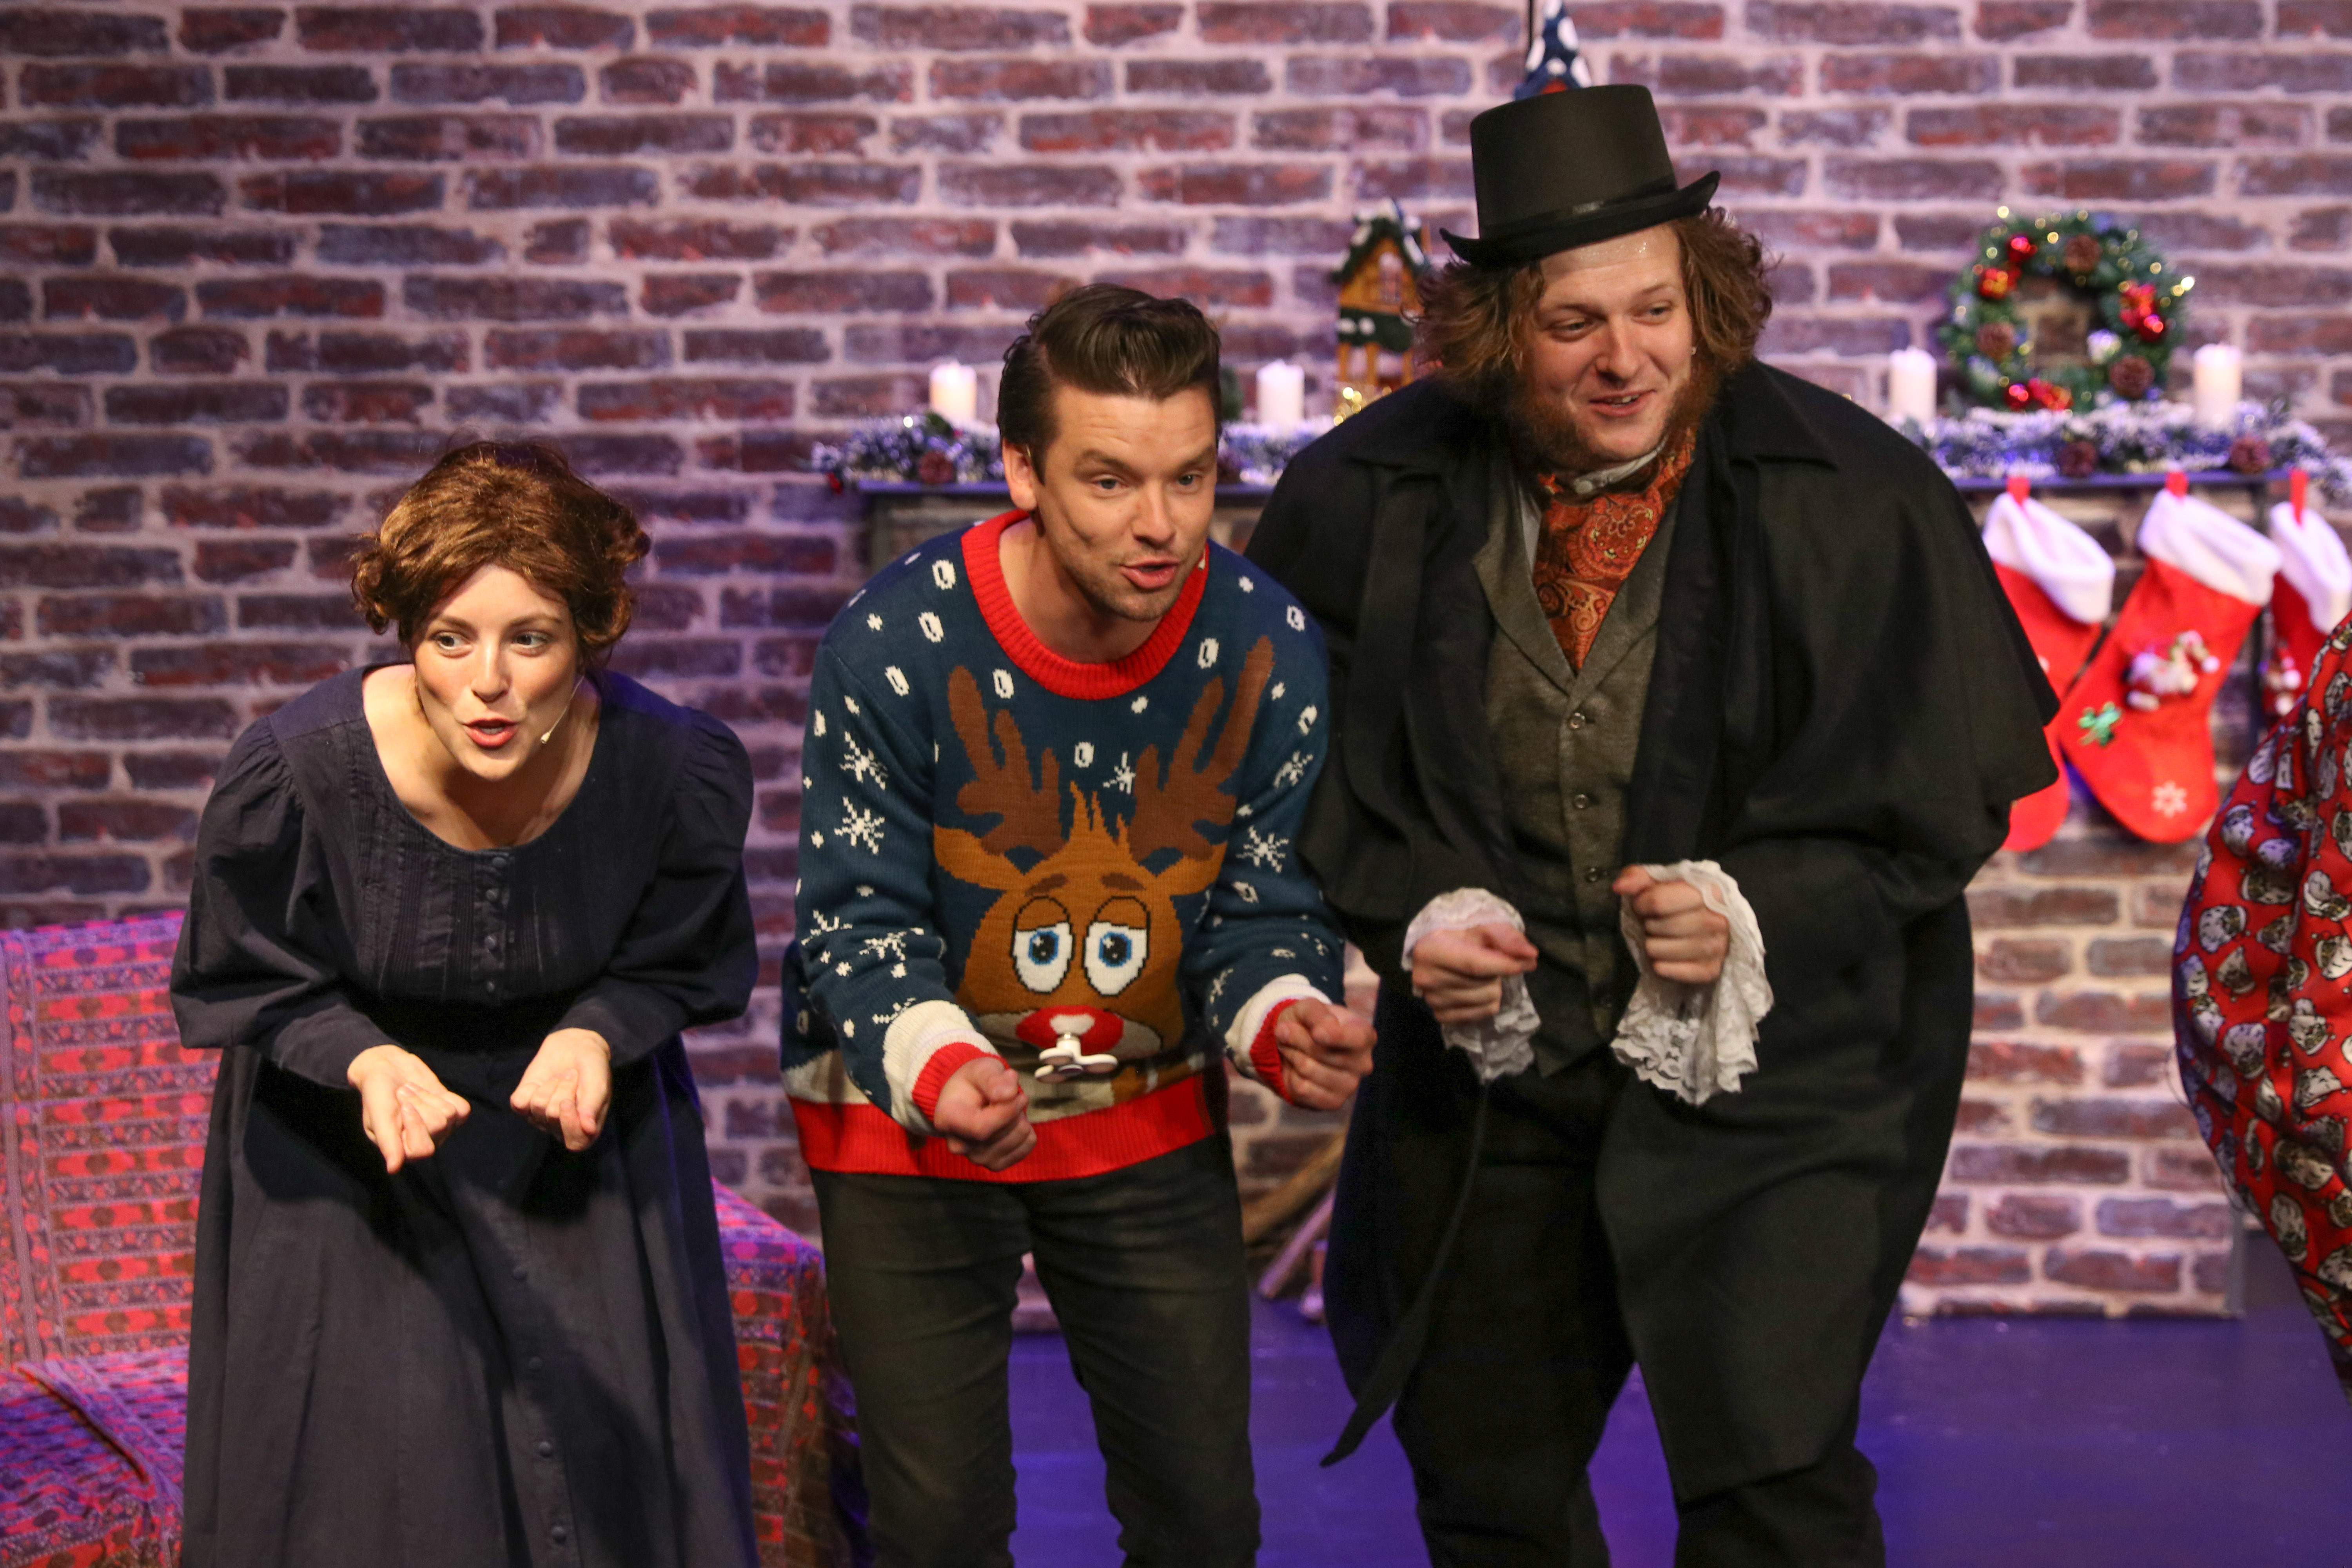 Mrs Cratchit, Fred and Scrooge